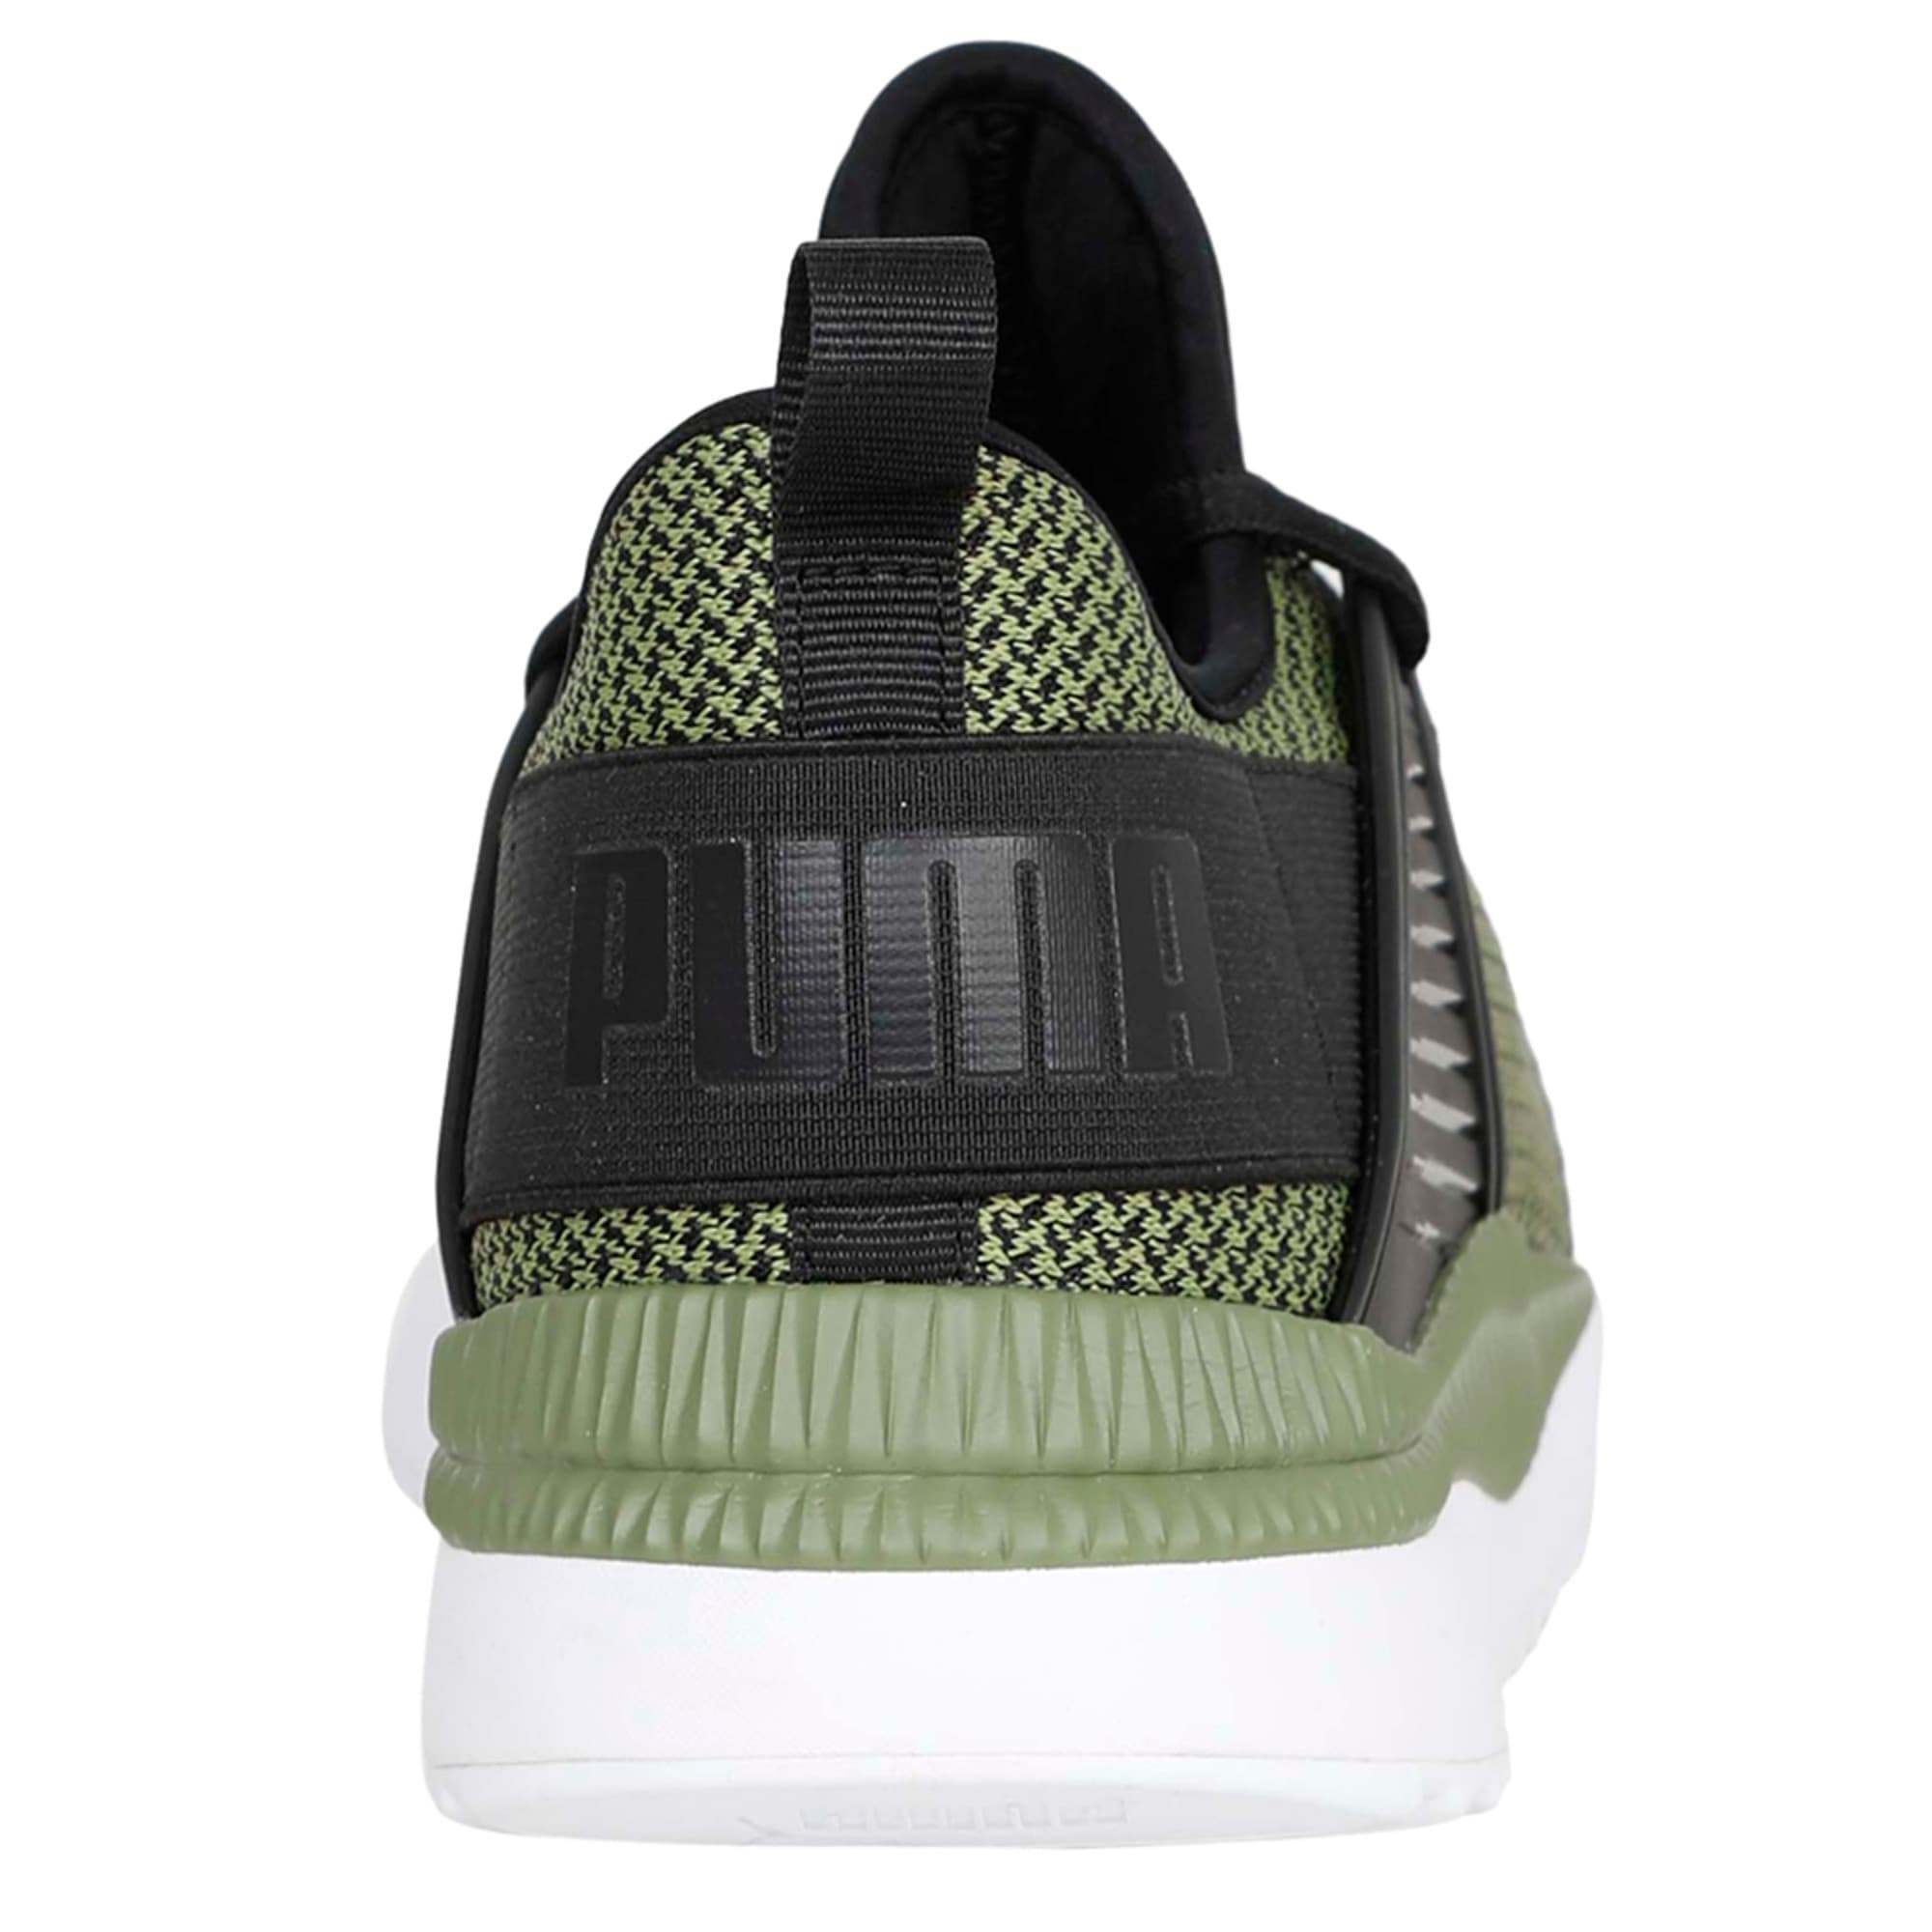 Thumbnail 4 of Pacer Next Cage GK Trainers, Puma Black-Capulet Olive, medium-IND